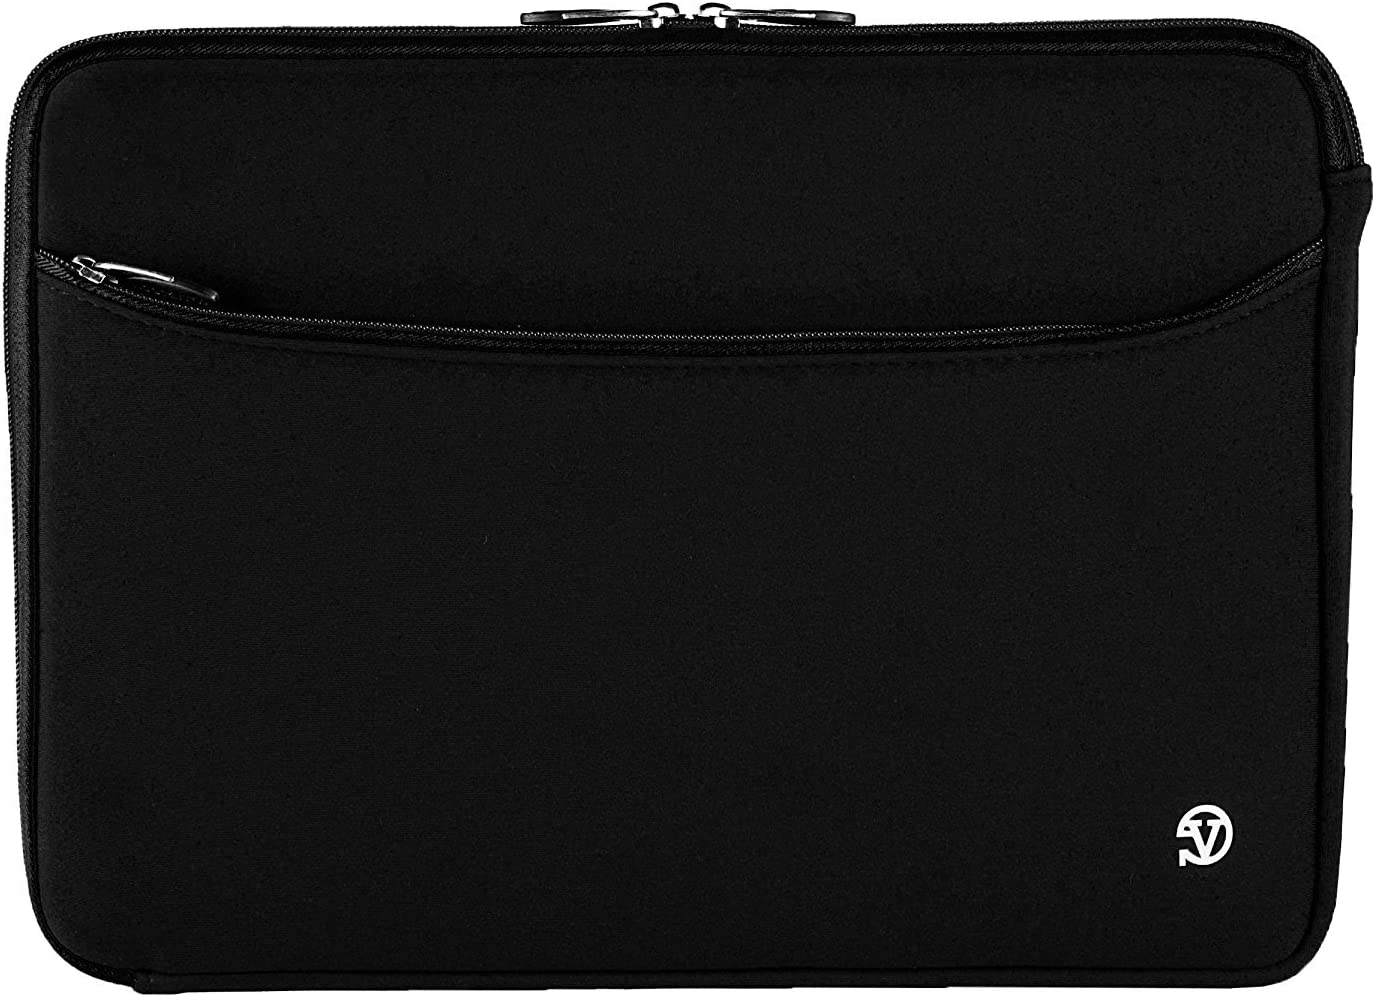 Vangoddy 17.3 Inch Laptop Sleeve Pouch Carrying Case Tablet Cover for HP Envy 17, Omen 17t, ProBook, Lenovo IdeaPad, ThinkPad, MSI GL72M, Razer Blade Pro, Black